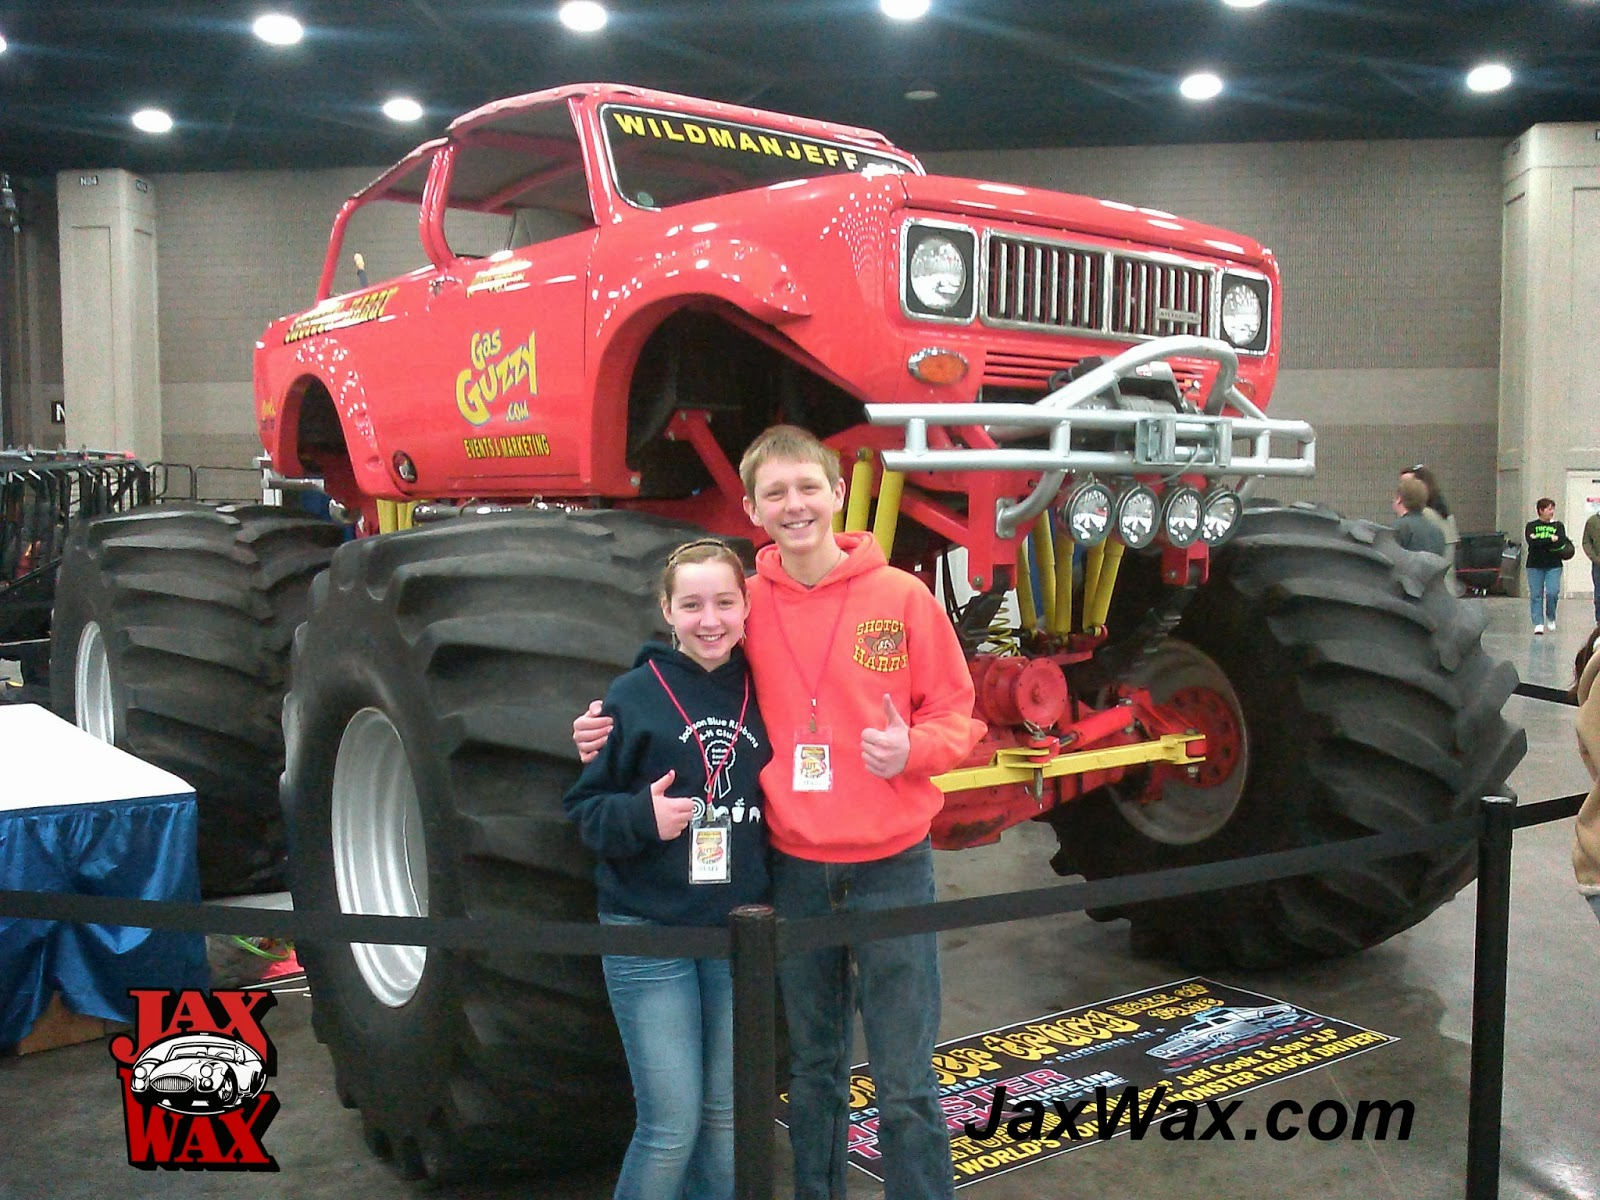 Scout Monster Truck Carl Casper Auto Show Jax Wax Customer